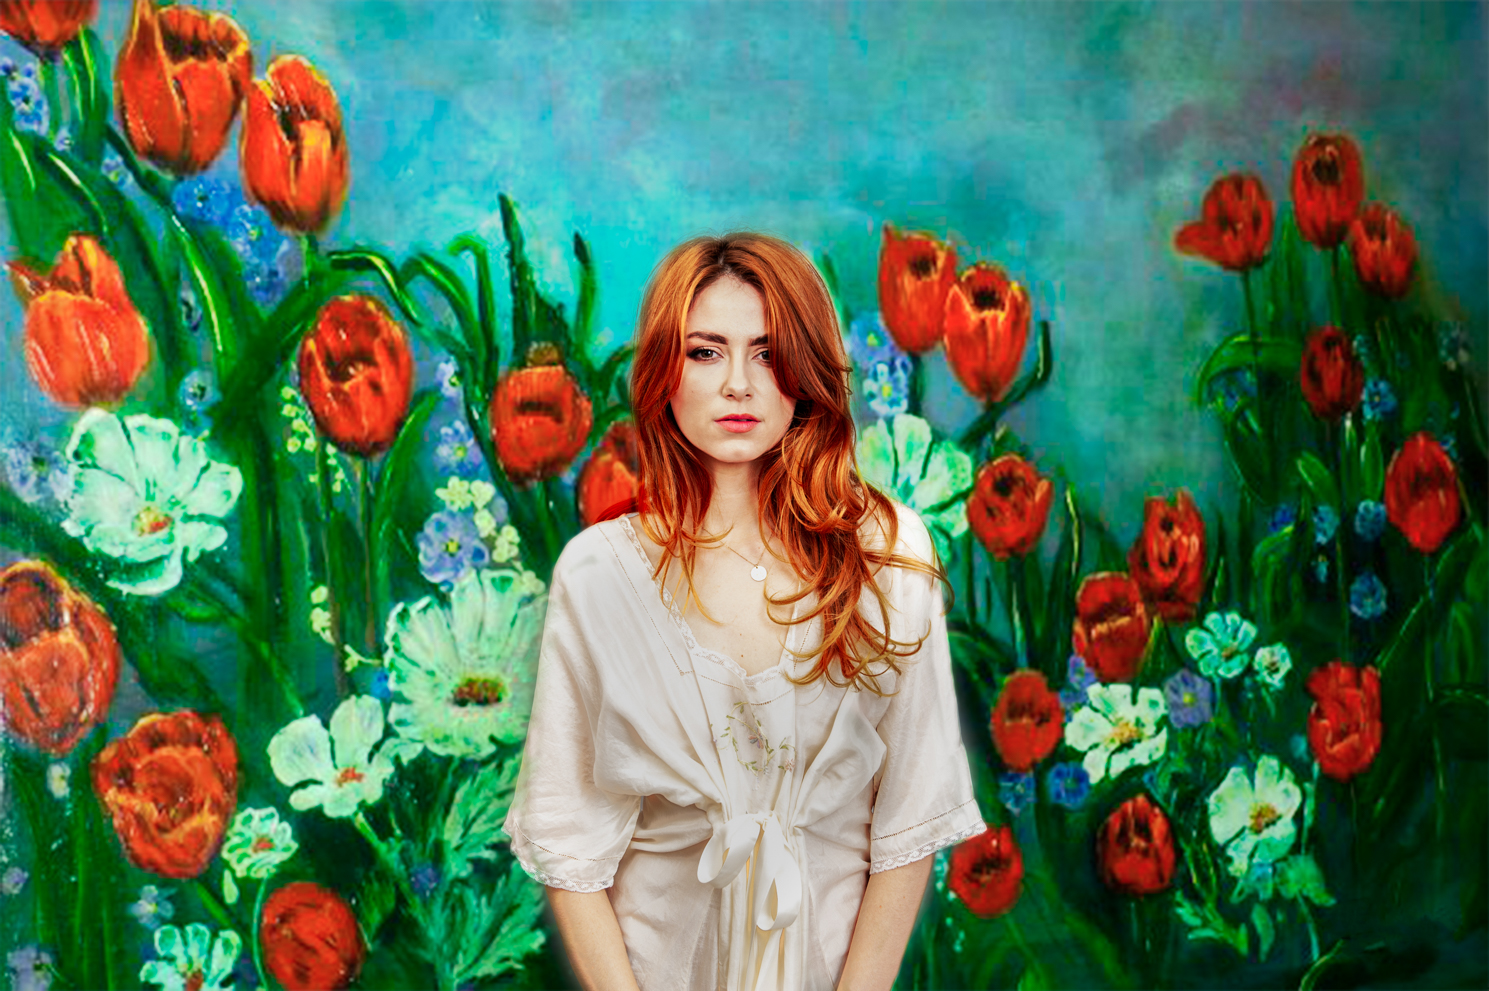 Fine art portrait of a red head model surrounded by wild flowers by Farnham, Surrey based fashion photographer James Muller